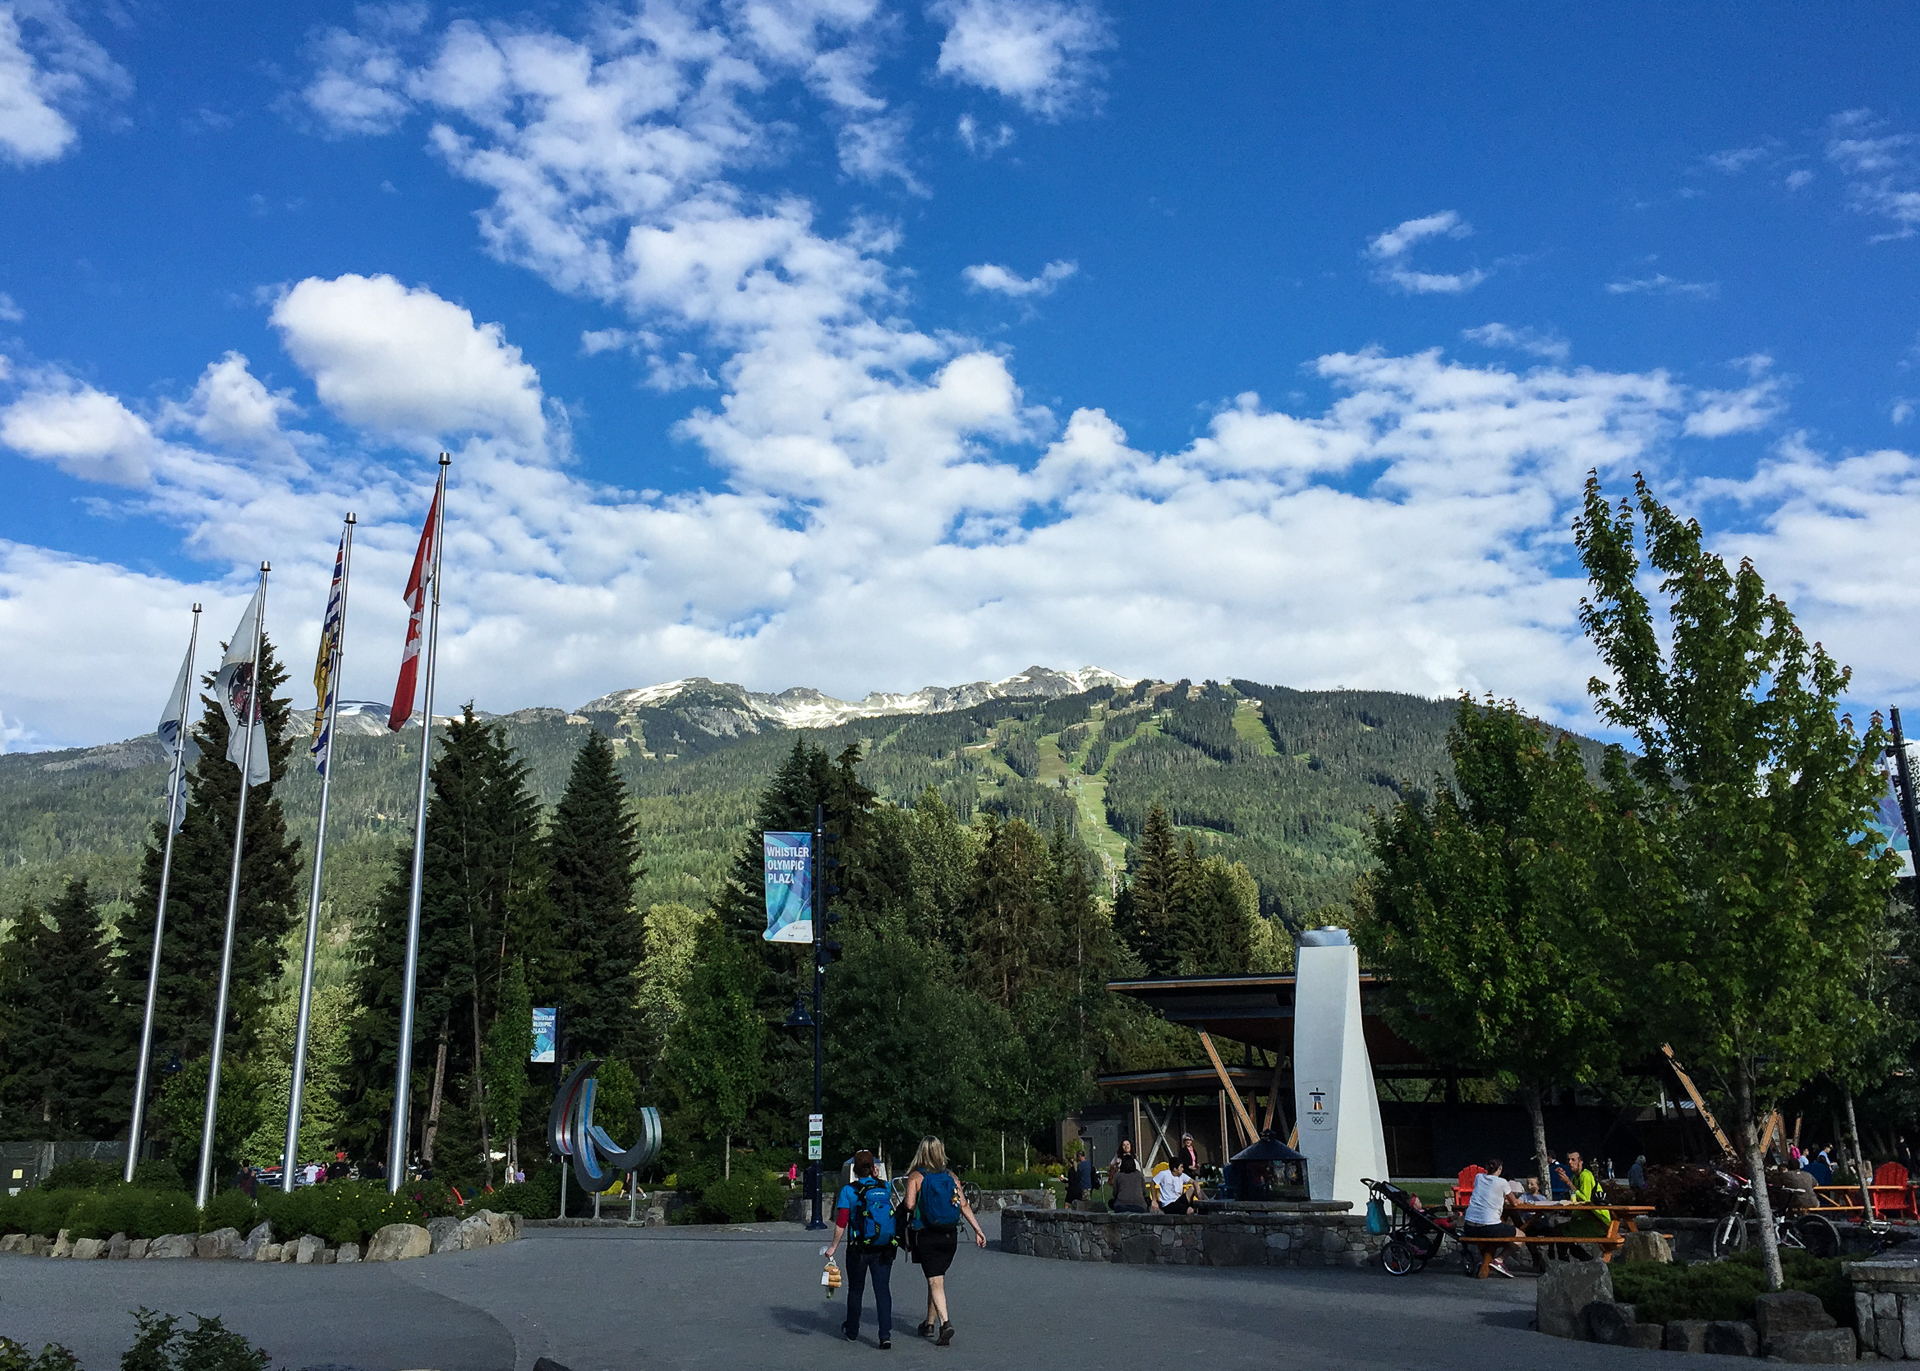 It was a beautiful day in Whistler!